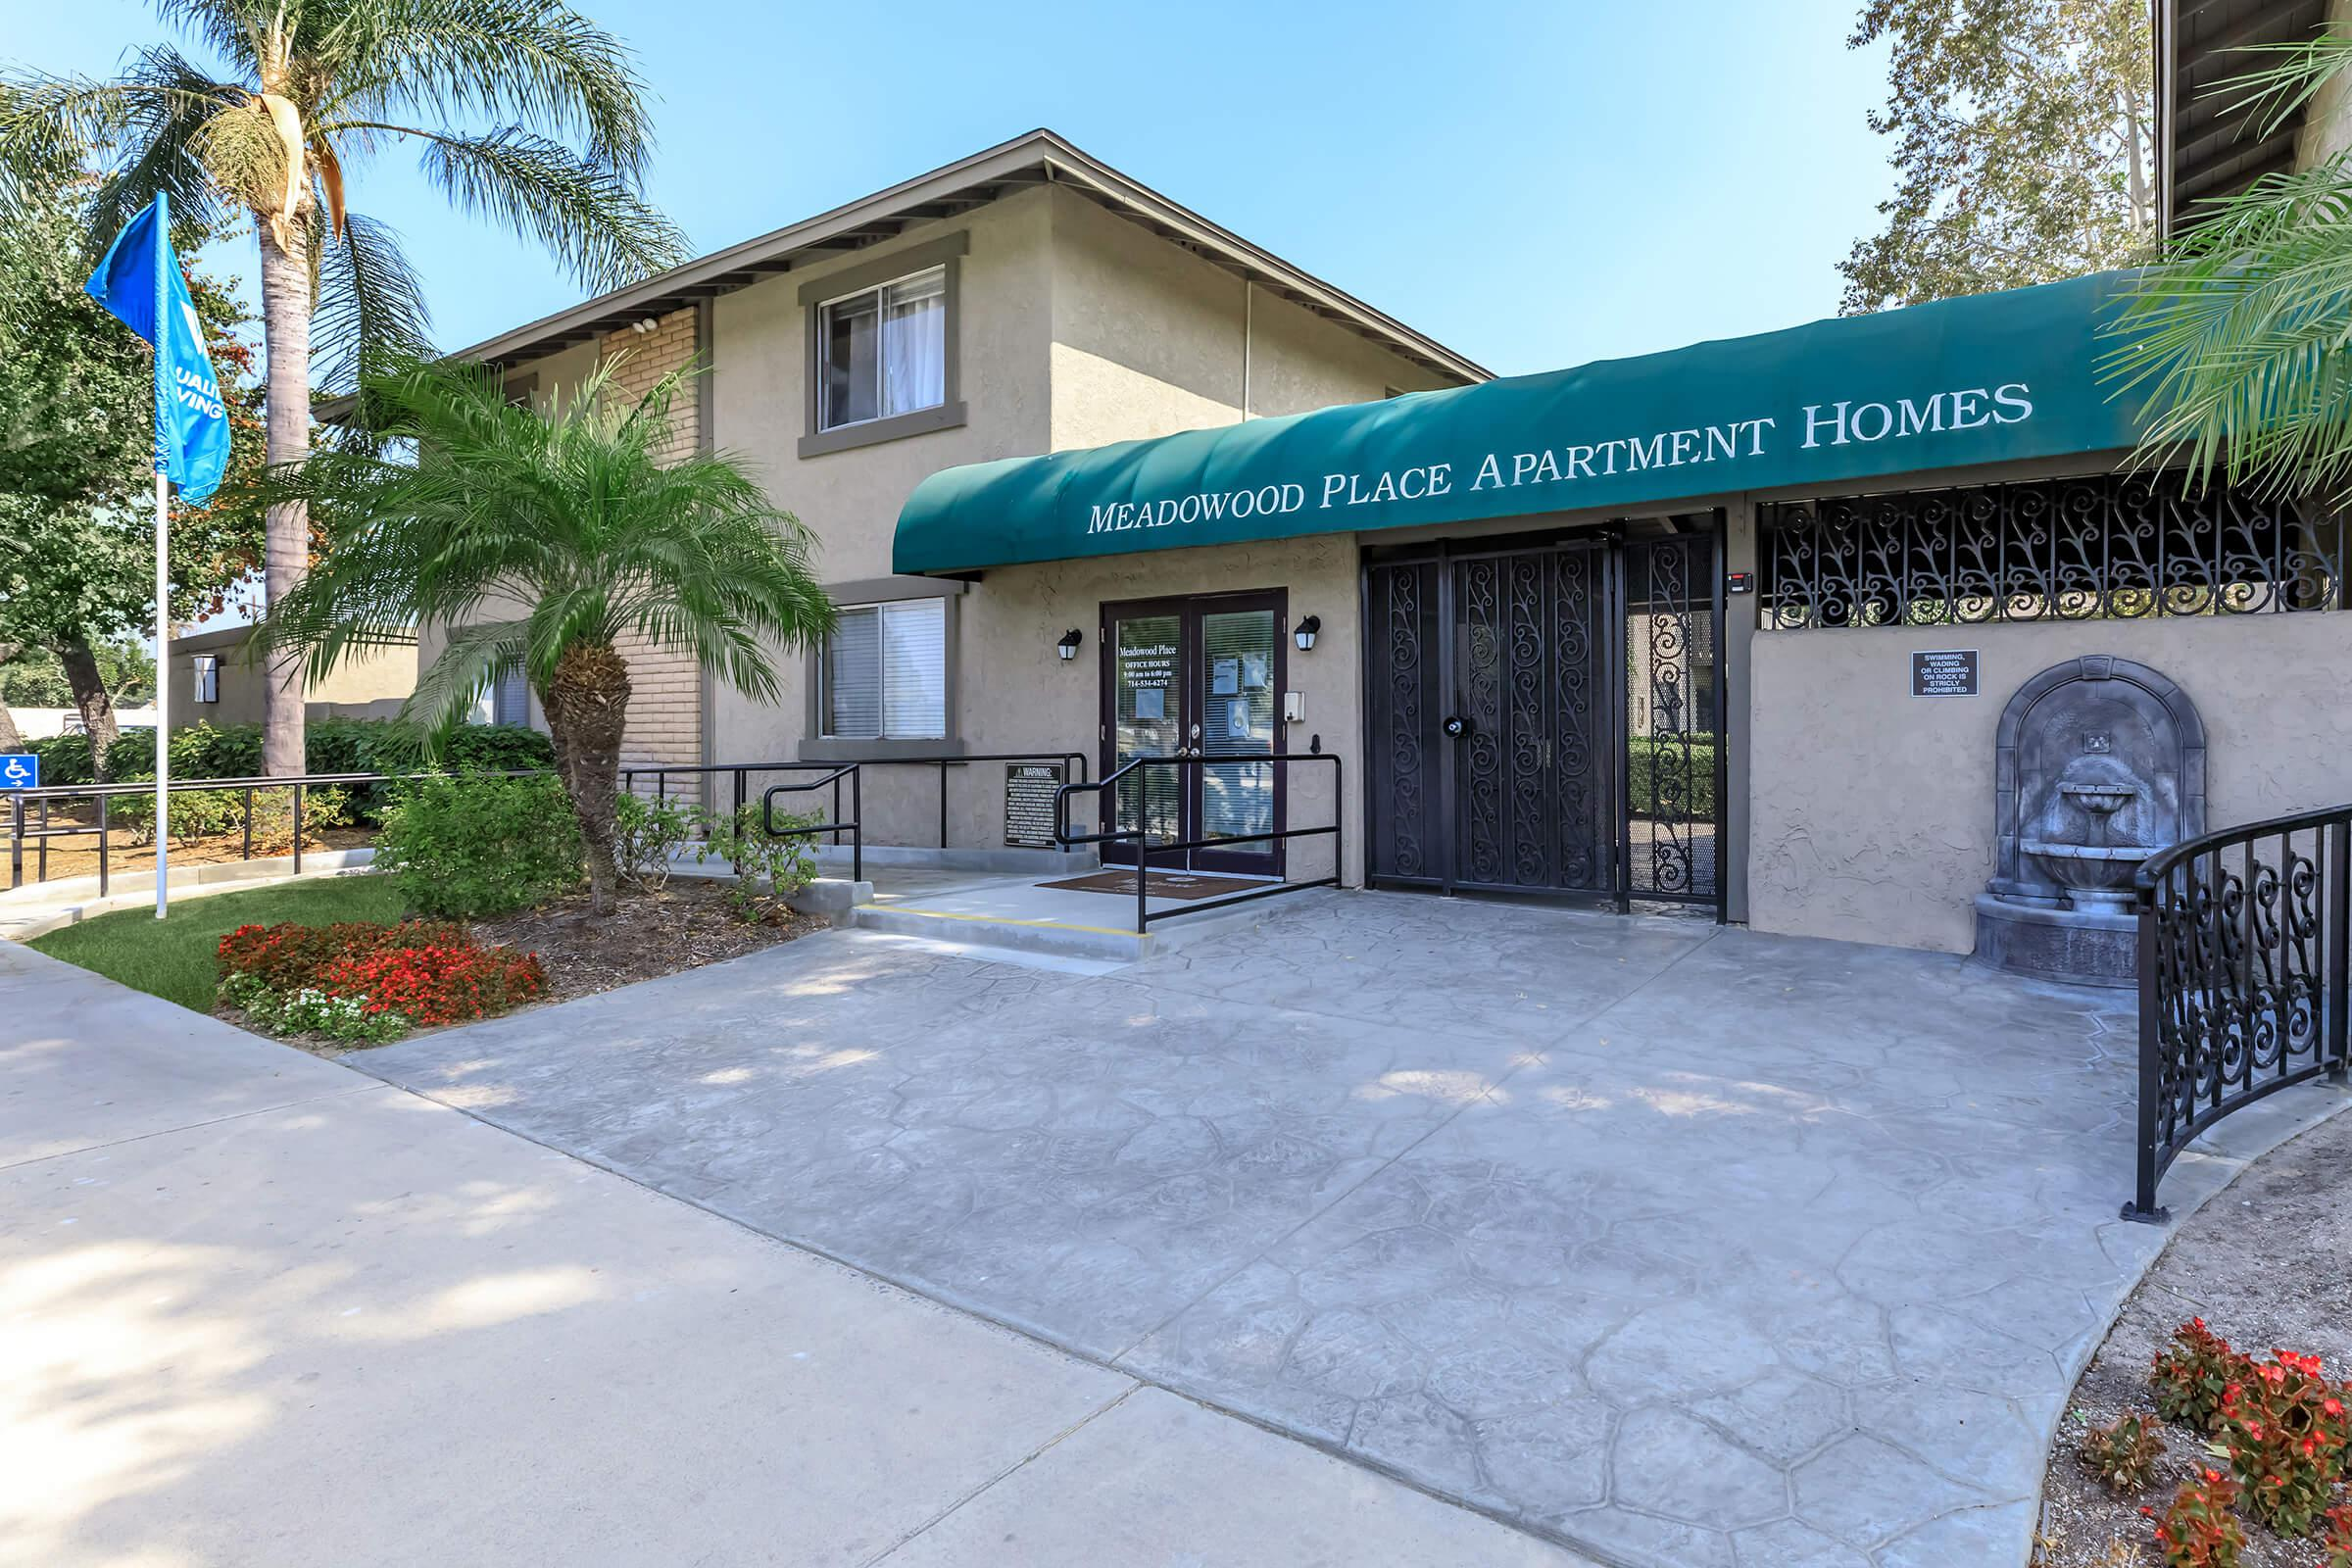 Meadowood Place Apartment Homes leasing office